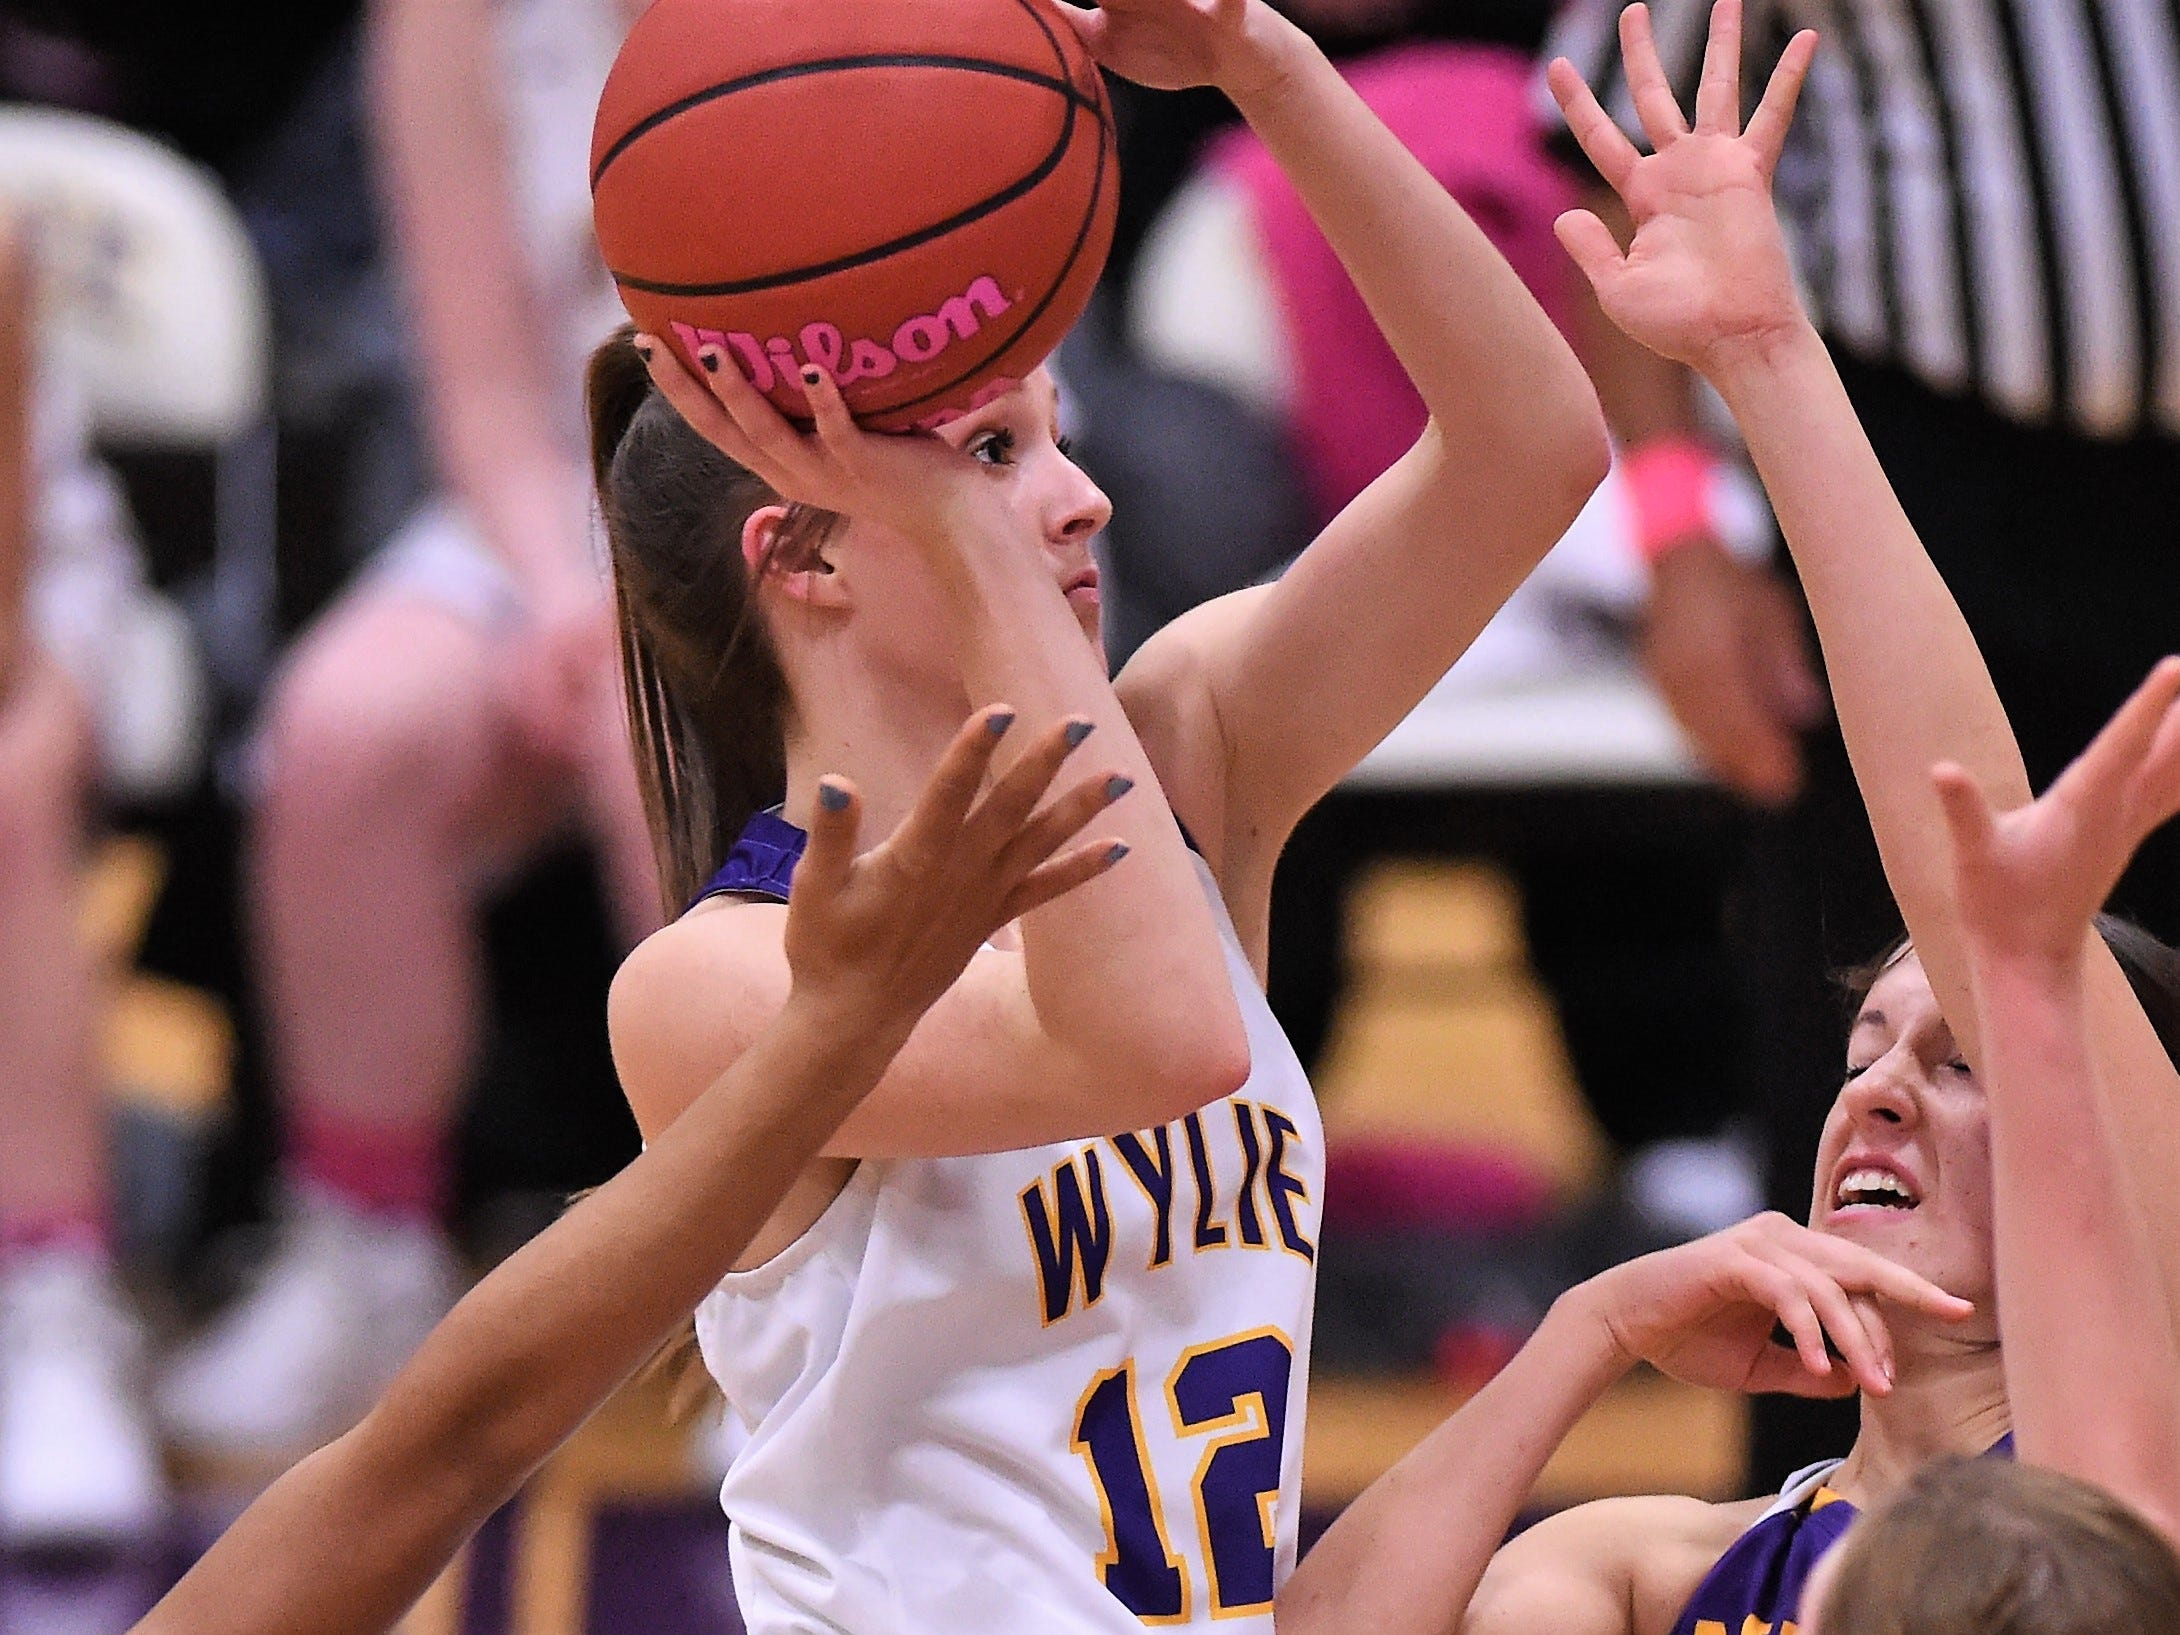 Wylie's Karis Christian (12)  goes into the air for a lay-up surrounded by Merkel defender in the Coaches vs. Cancer Pink Out game on Tuesday, Dec. 4, 2018. The Lady Bulldogs won 75-39.